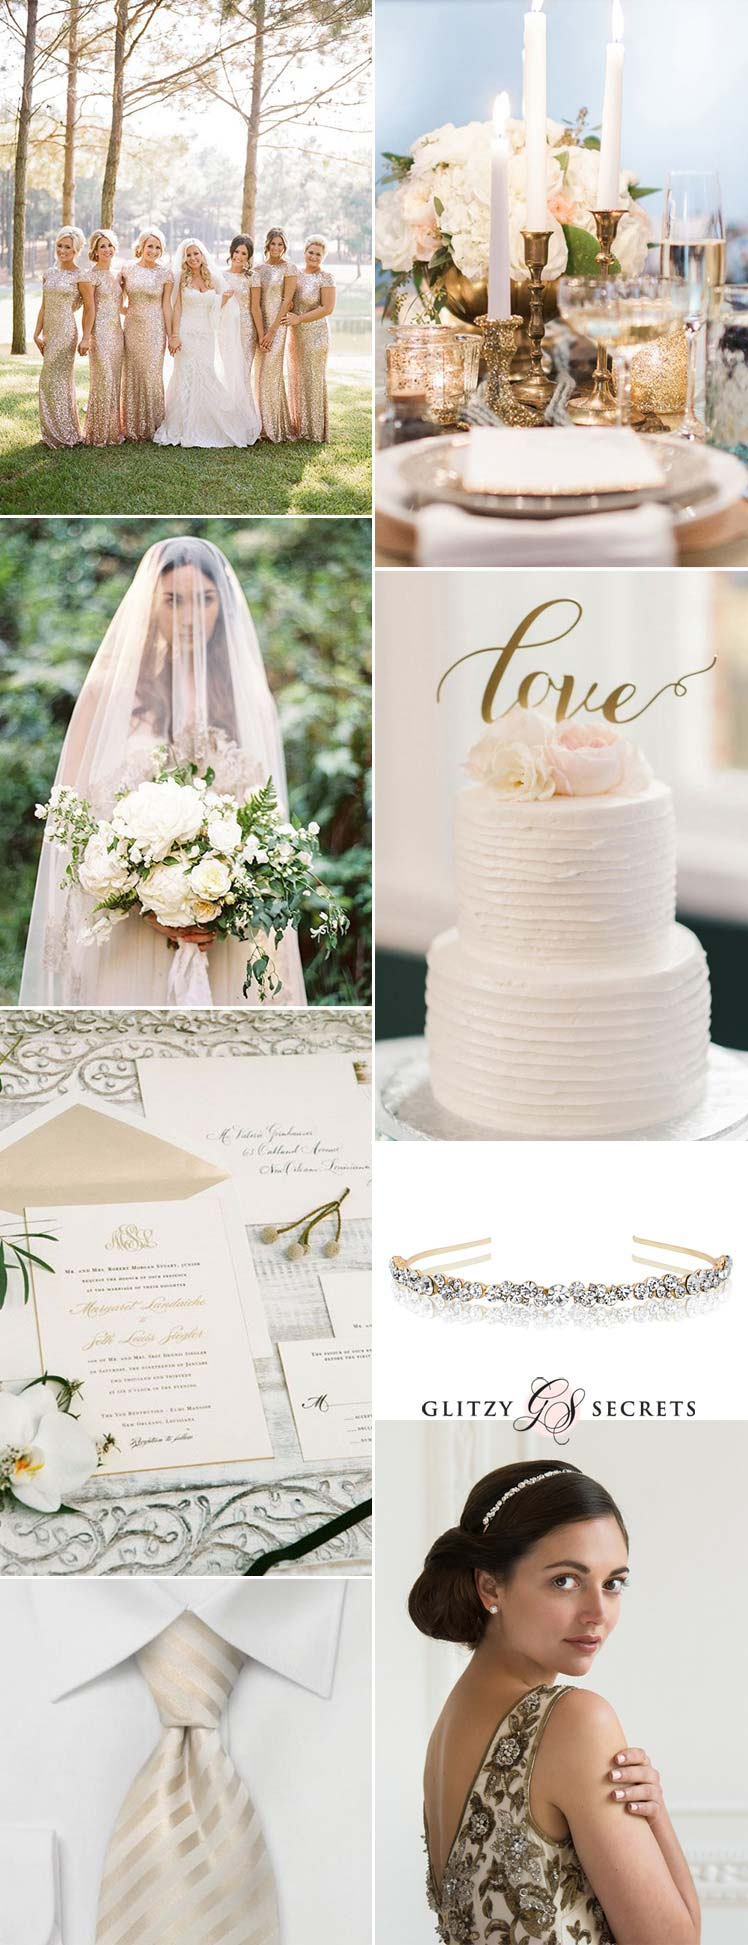 Luxurious Cream & Gold Wedding Theme Ideas | Glitzy Secrets